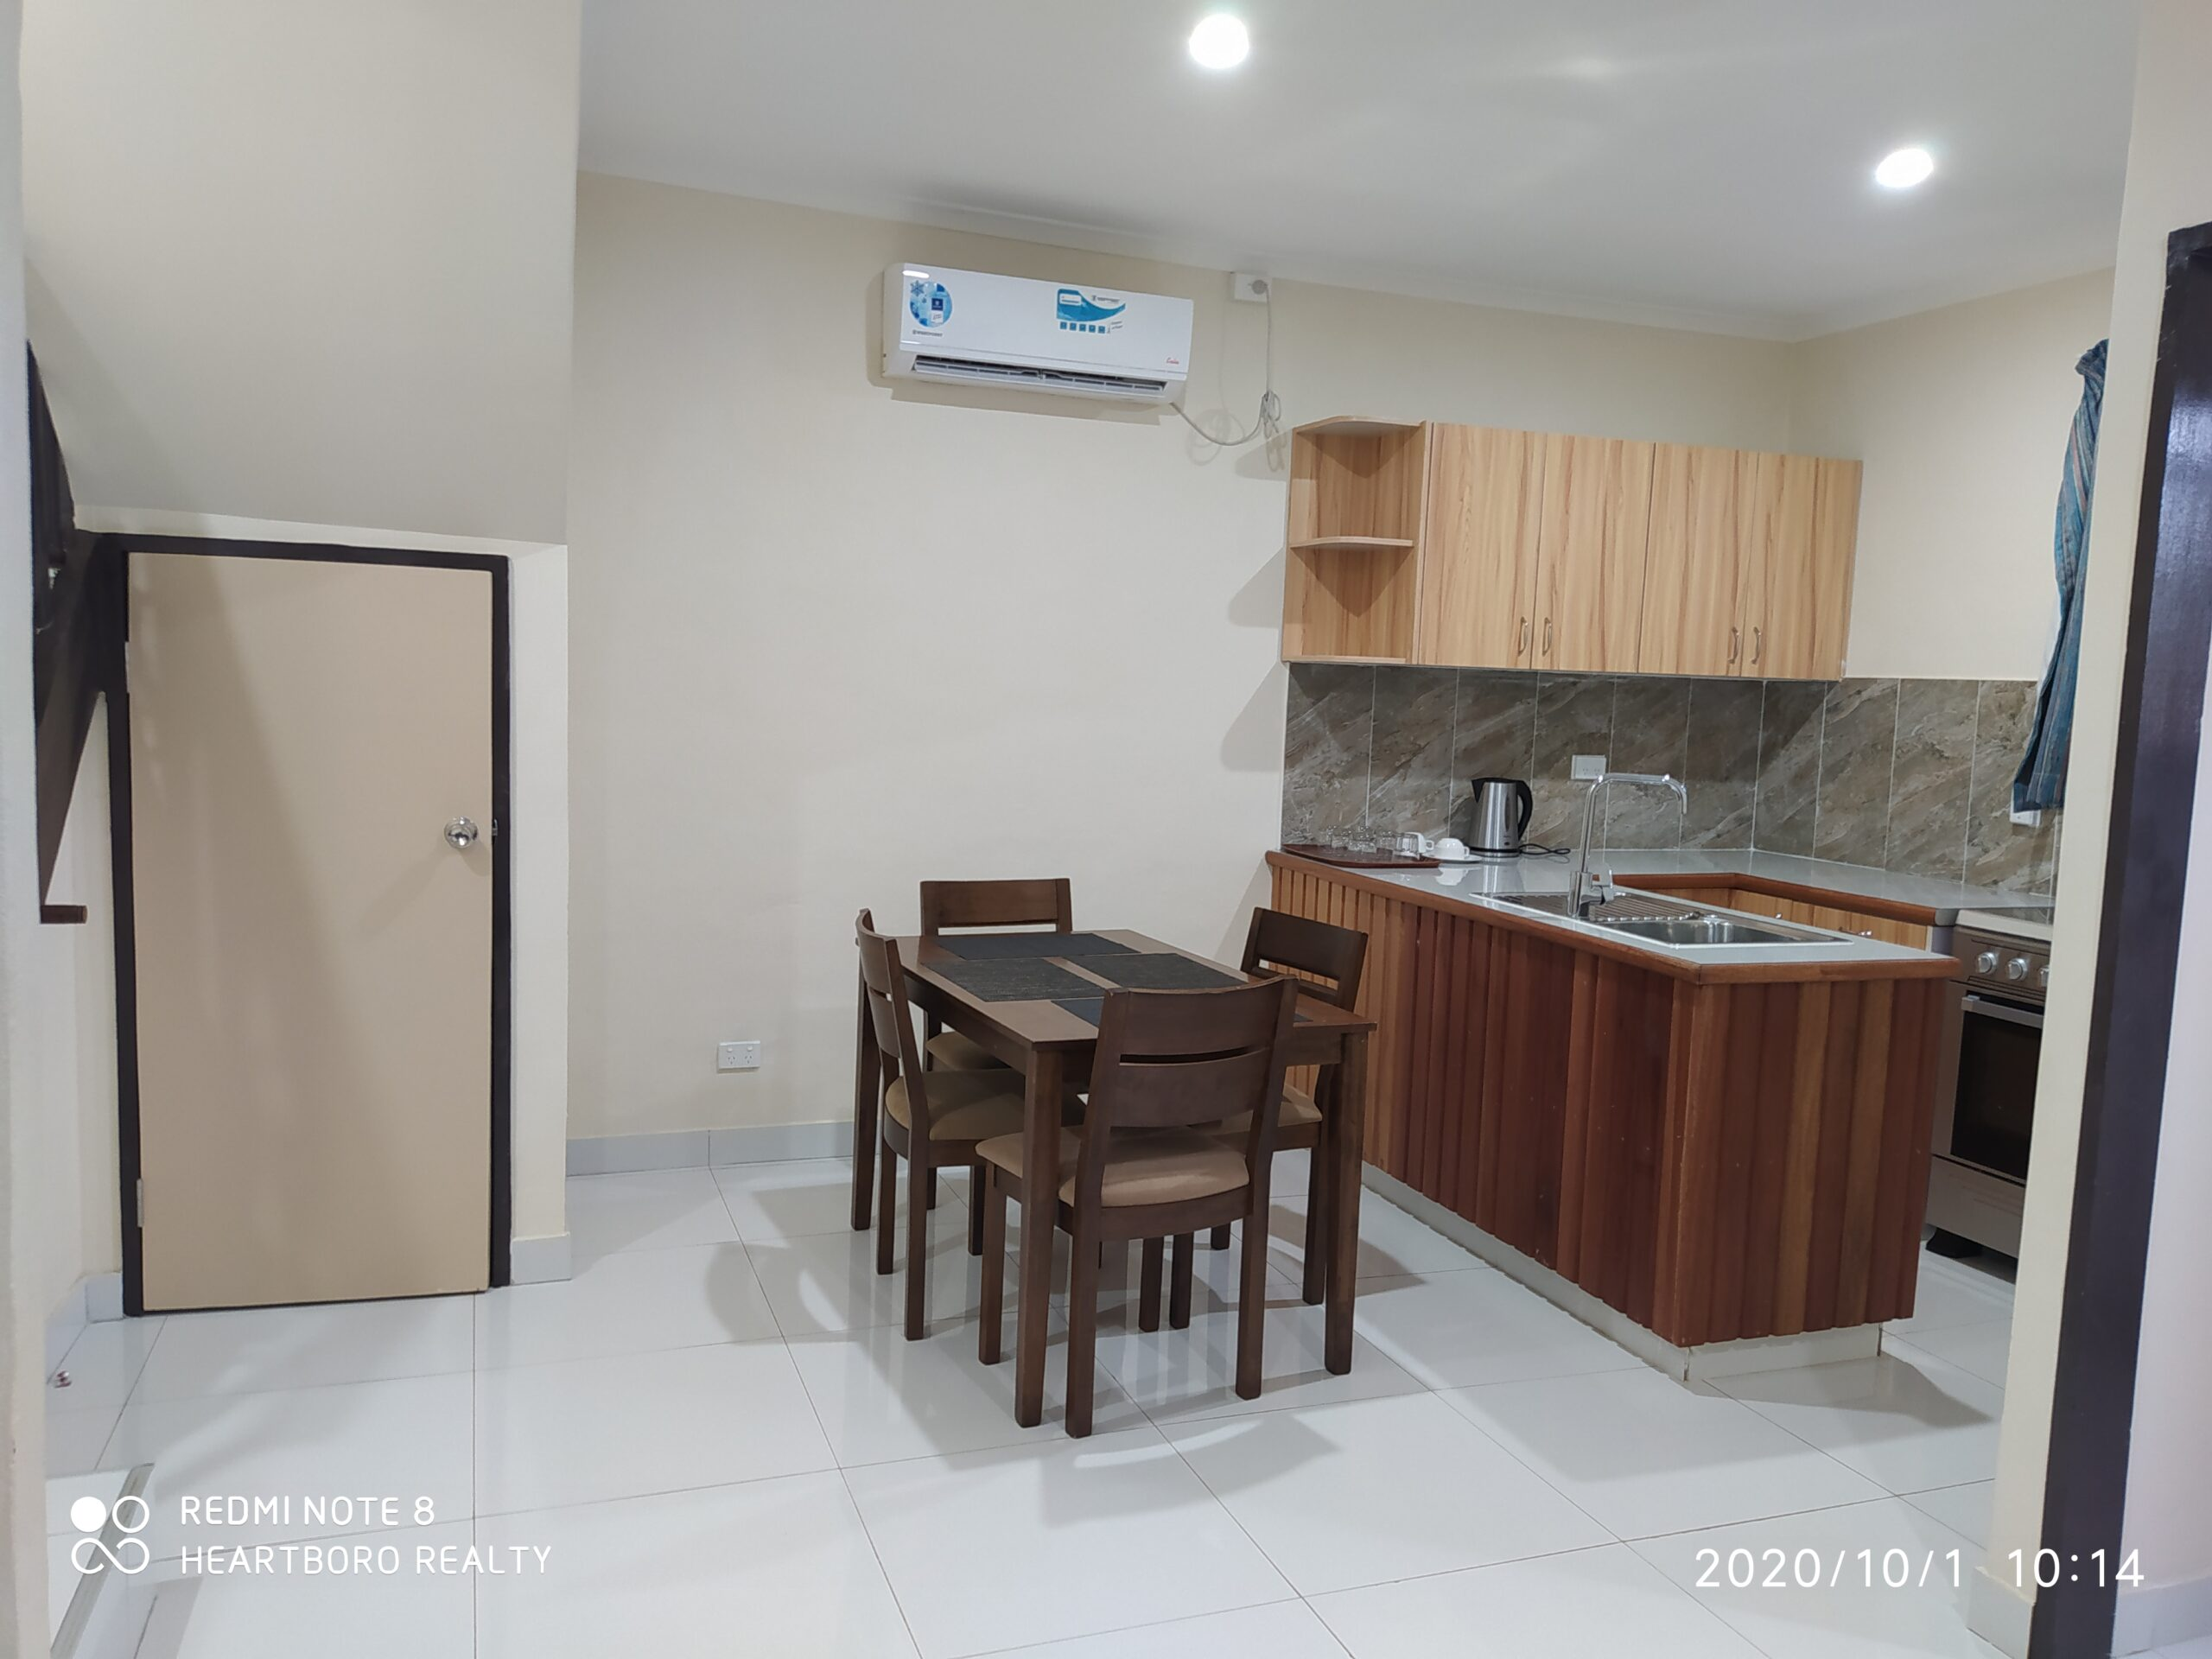 Service Apartment for rent